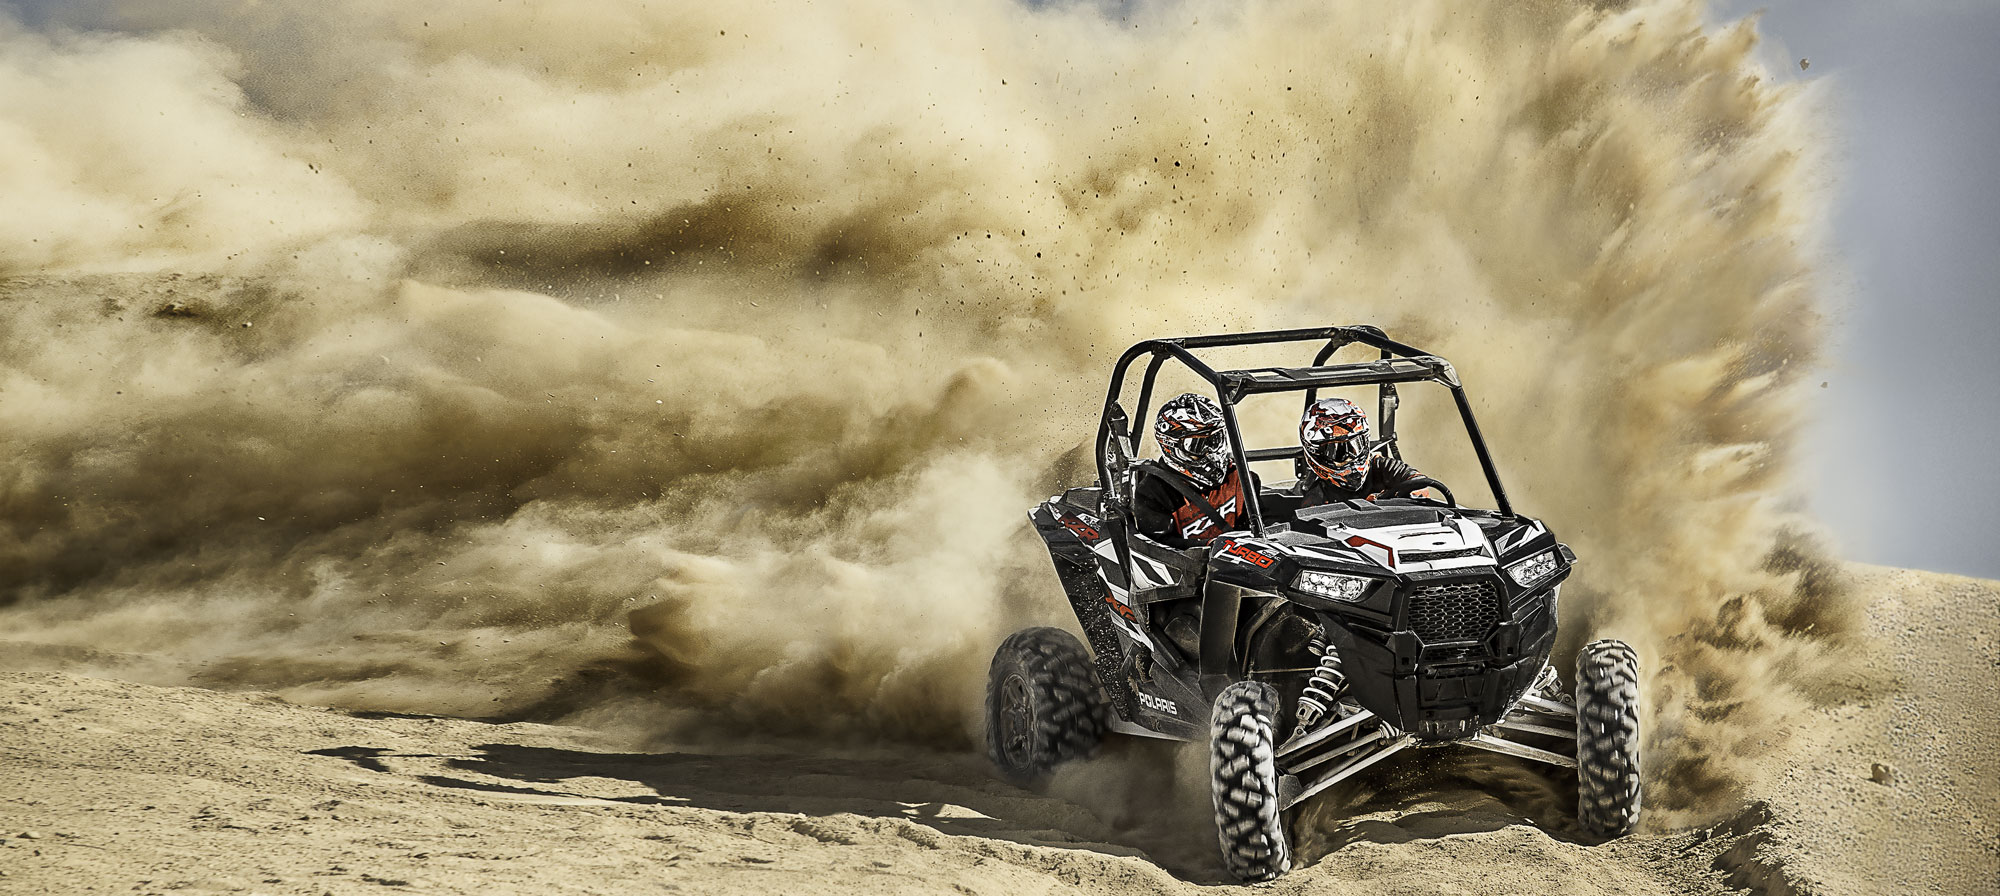 POLARIS N°1 en Off Road